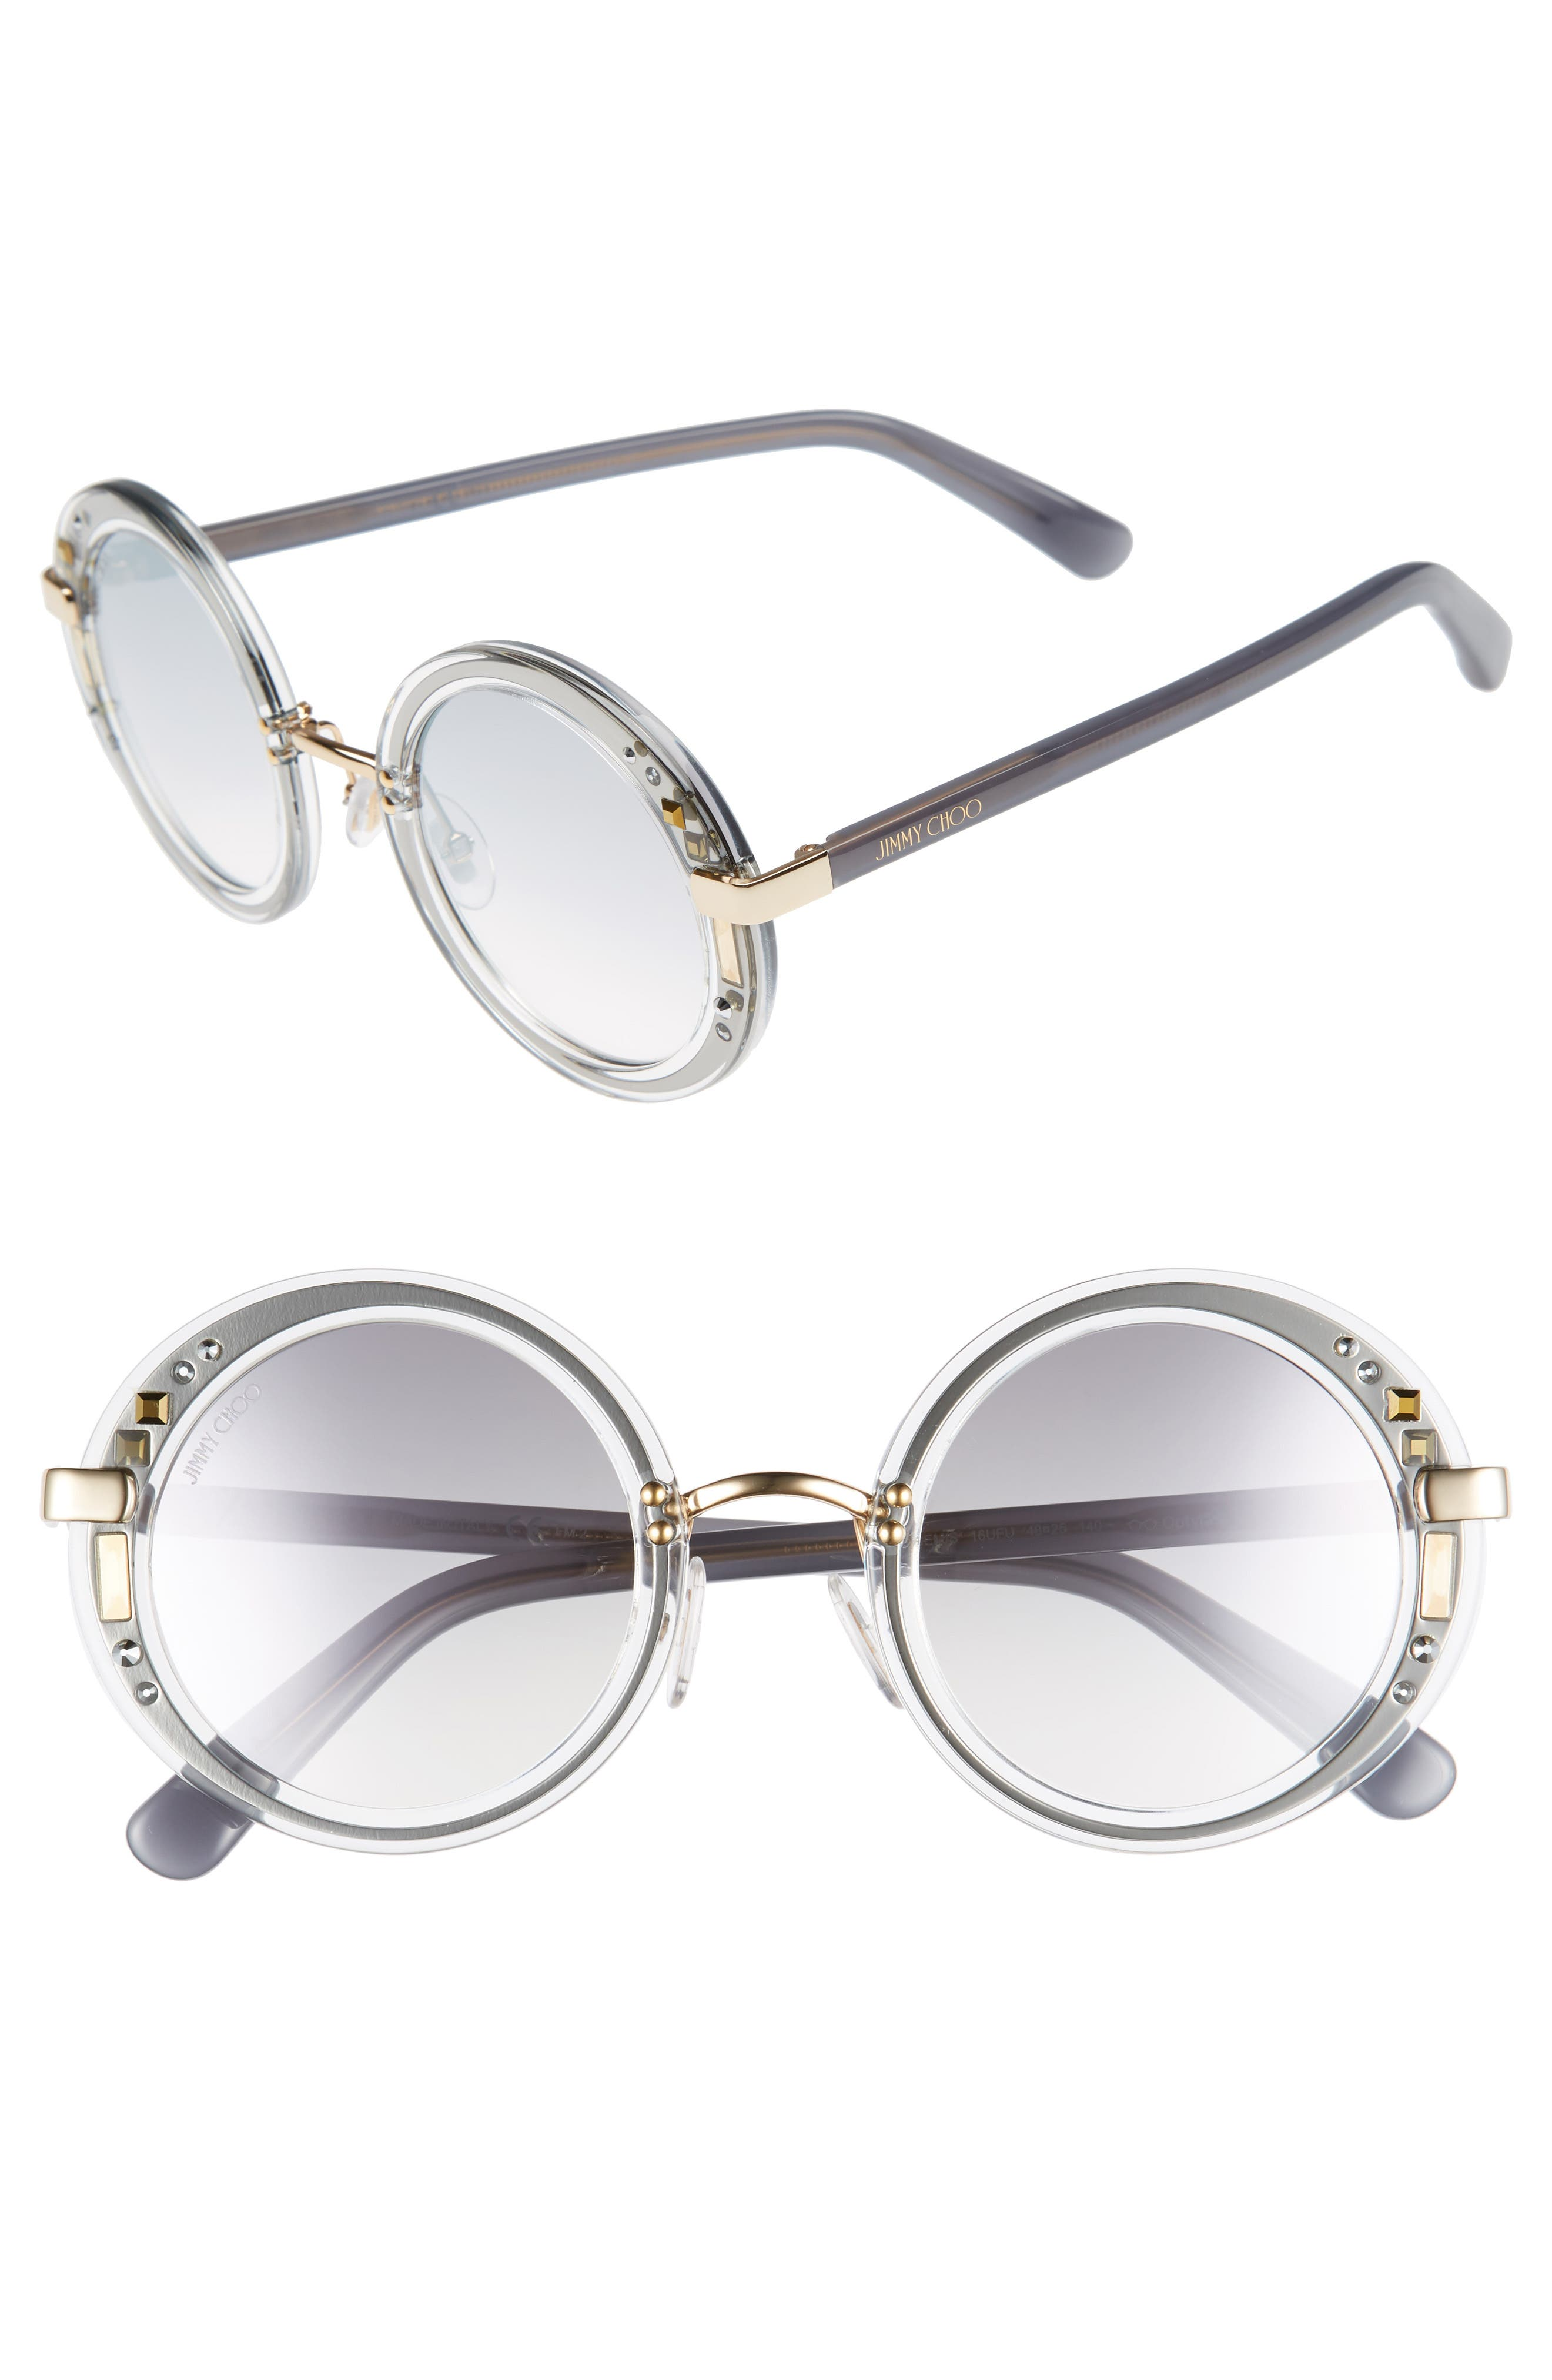 Jimmy Choo Gems 48mm Round Sunglasses